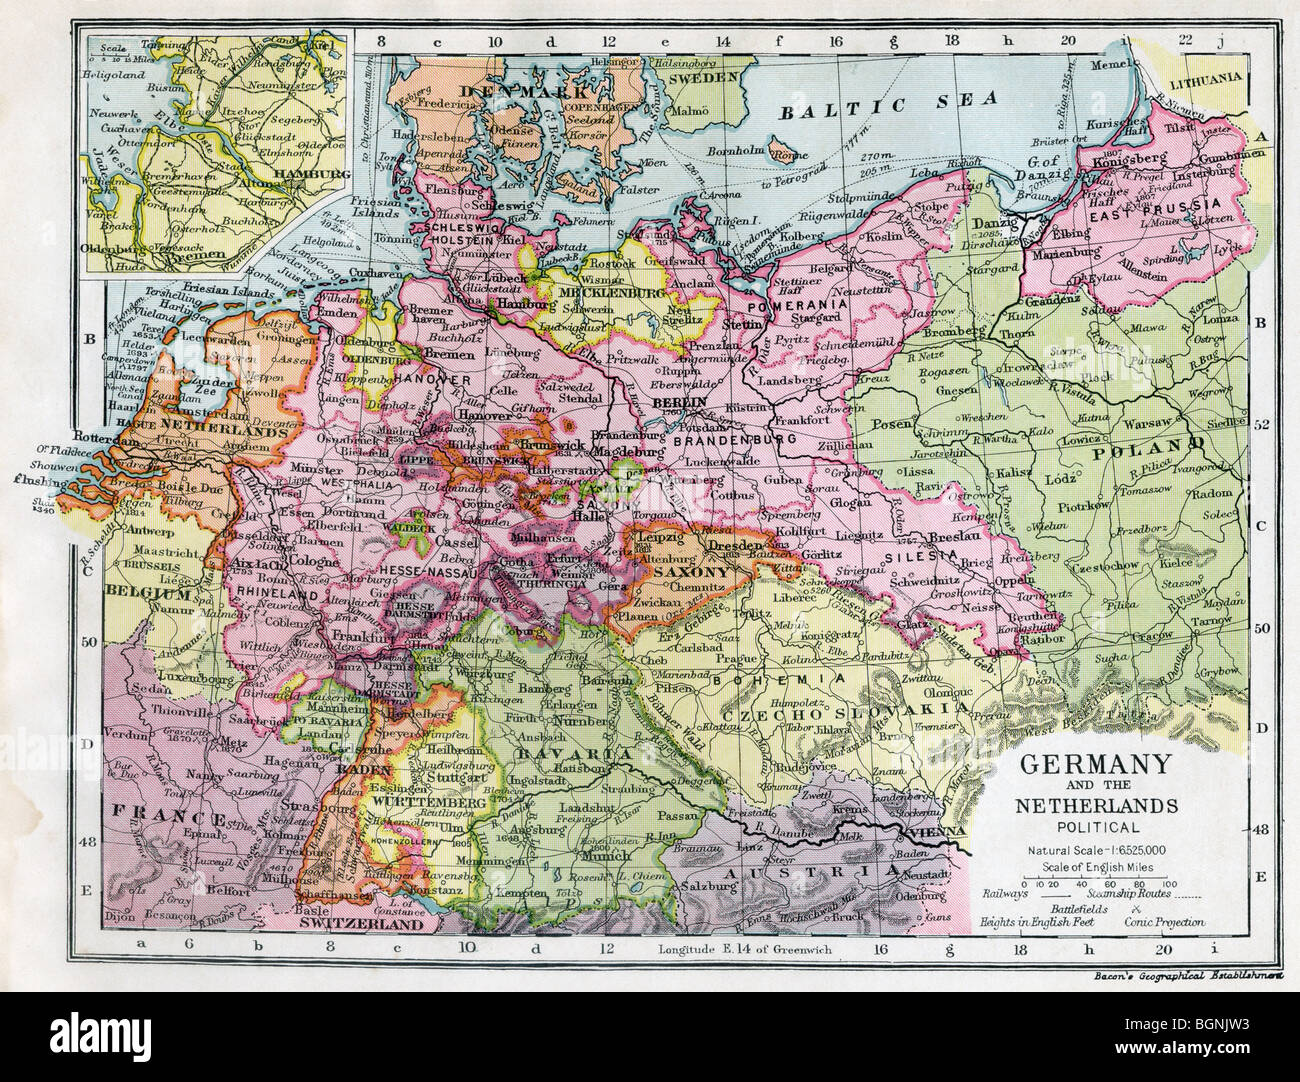 Germany and the Netherlands between the First and Second World Wars. - Stock Image